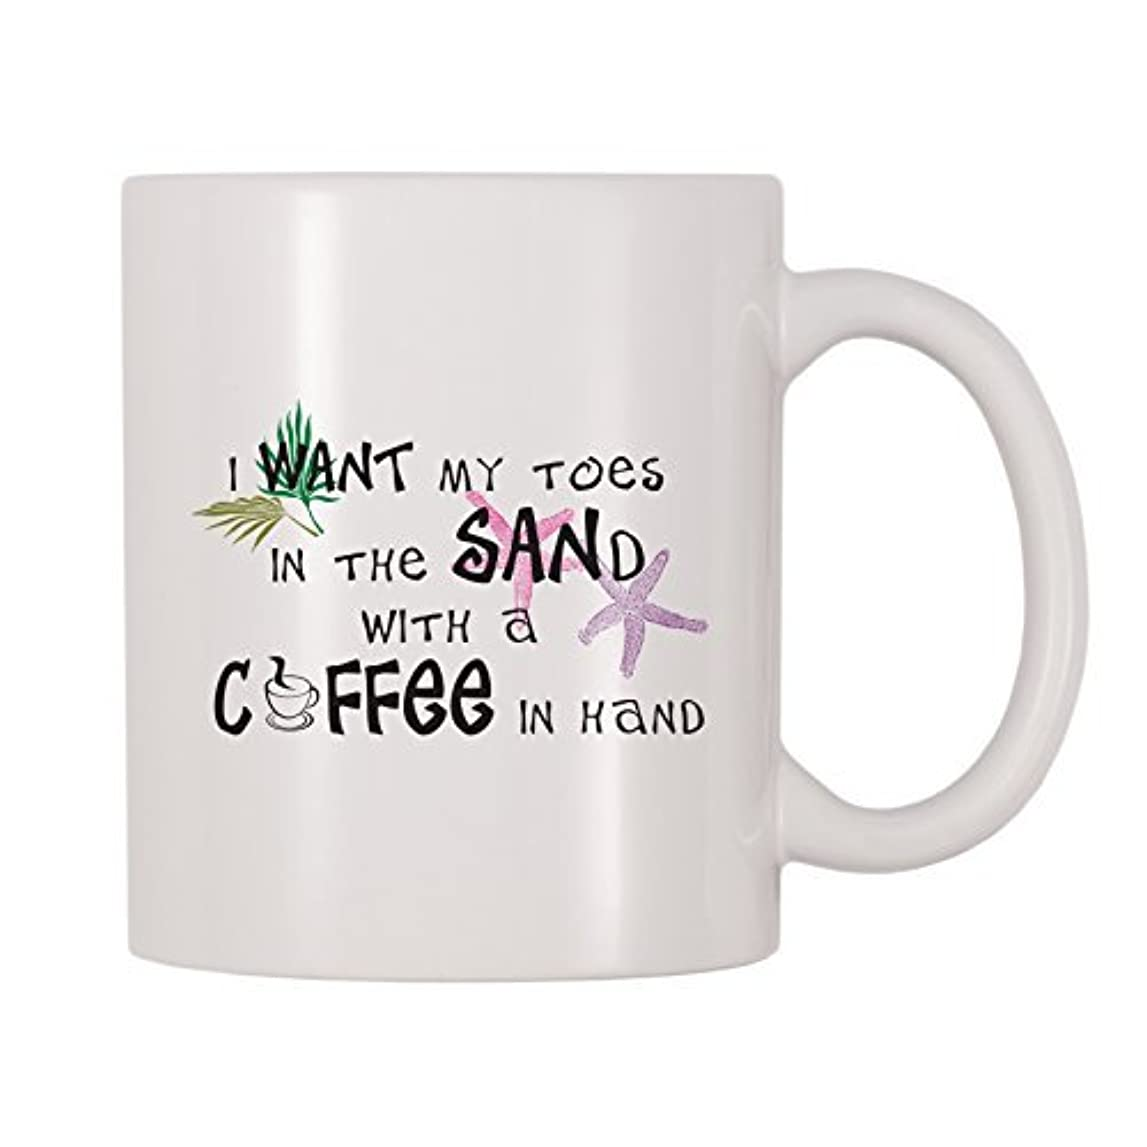 4 All Times I Want My Toes In The Sand With Coffee In Hand (11 oz) [並行輸入品]